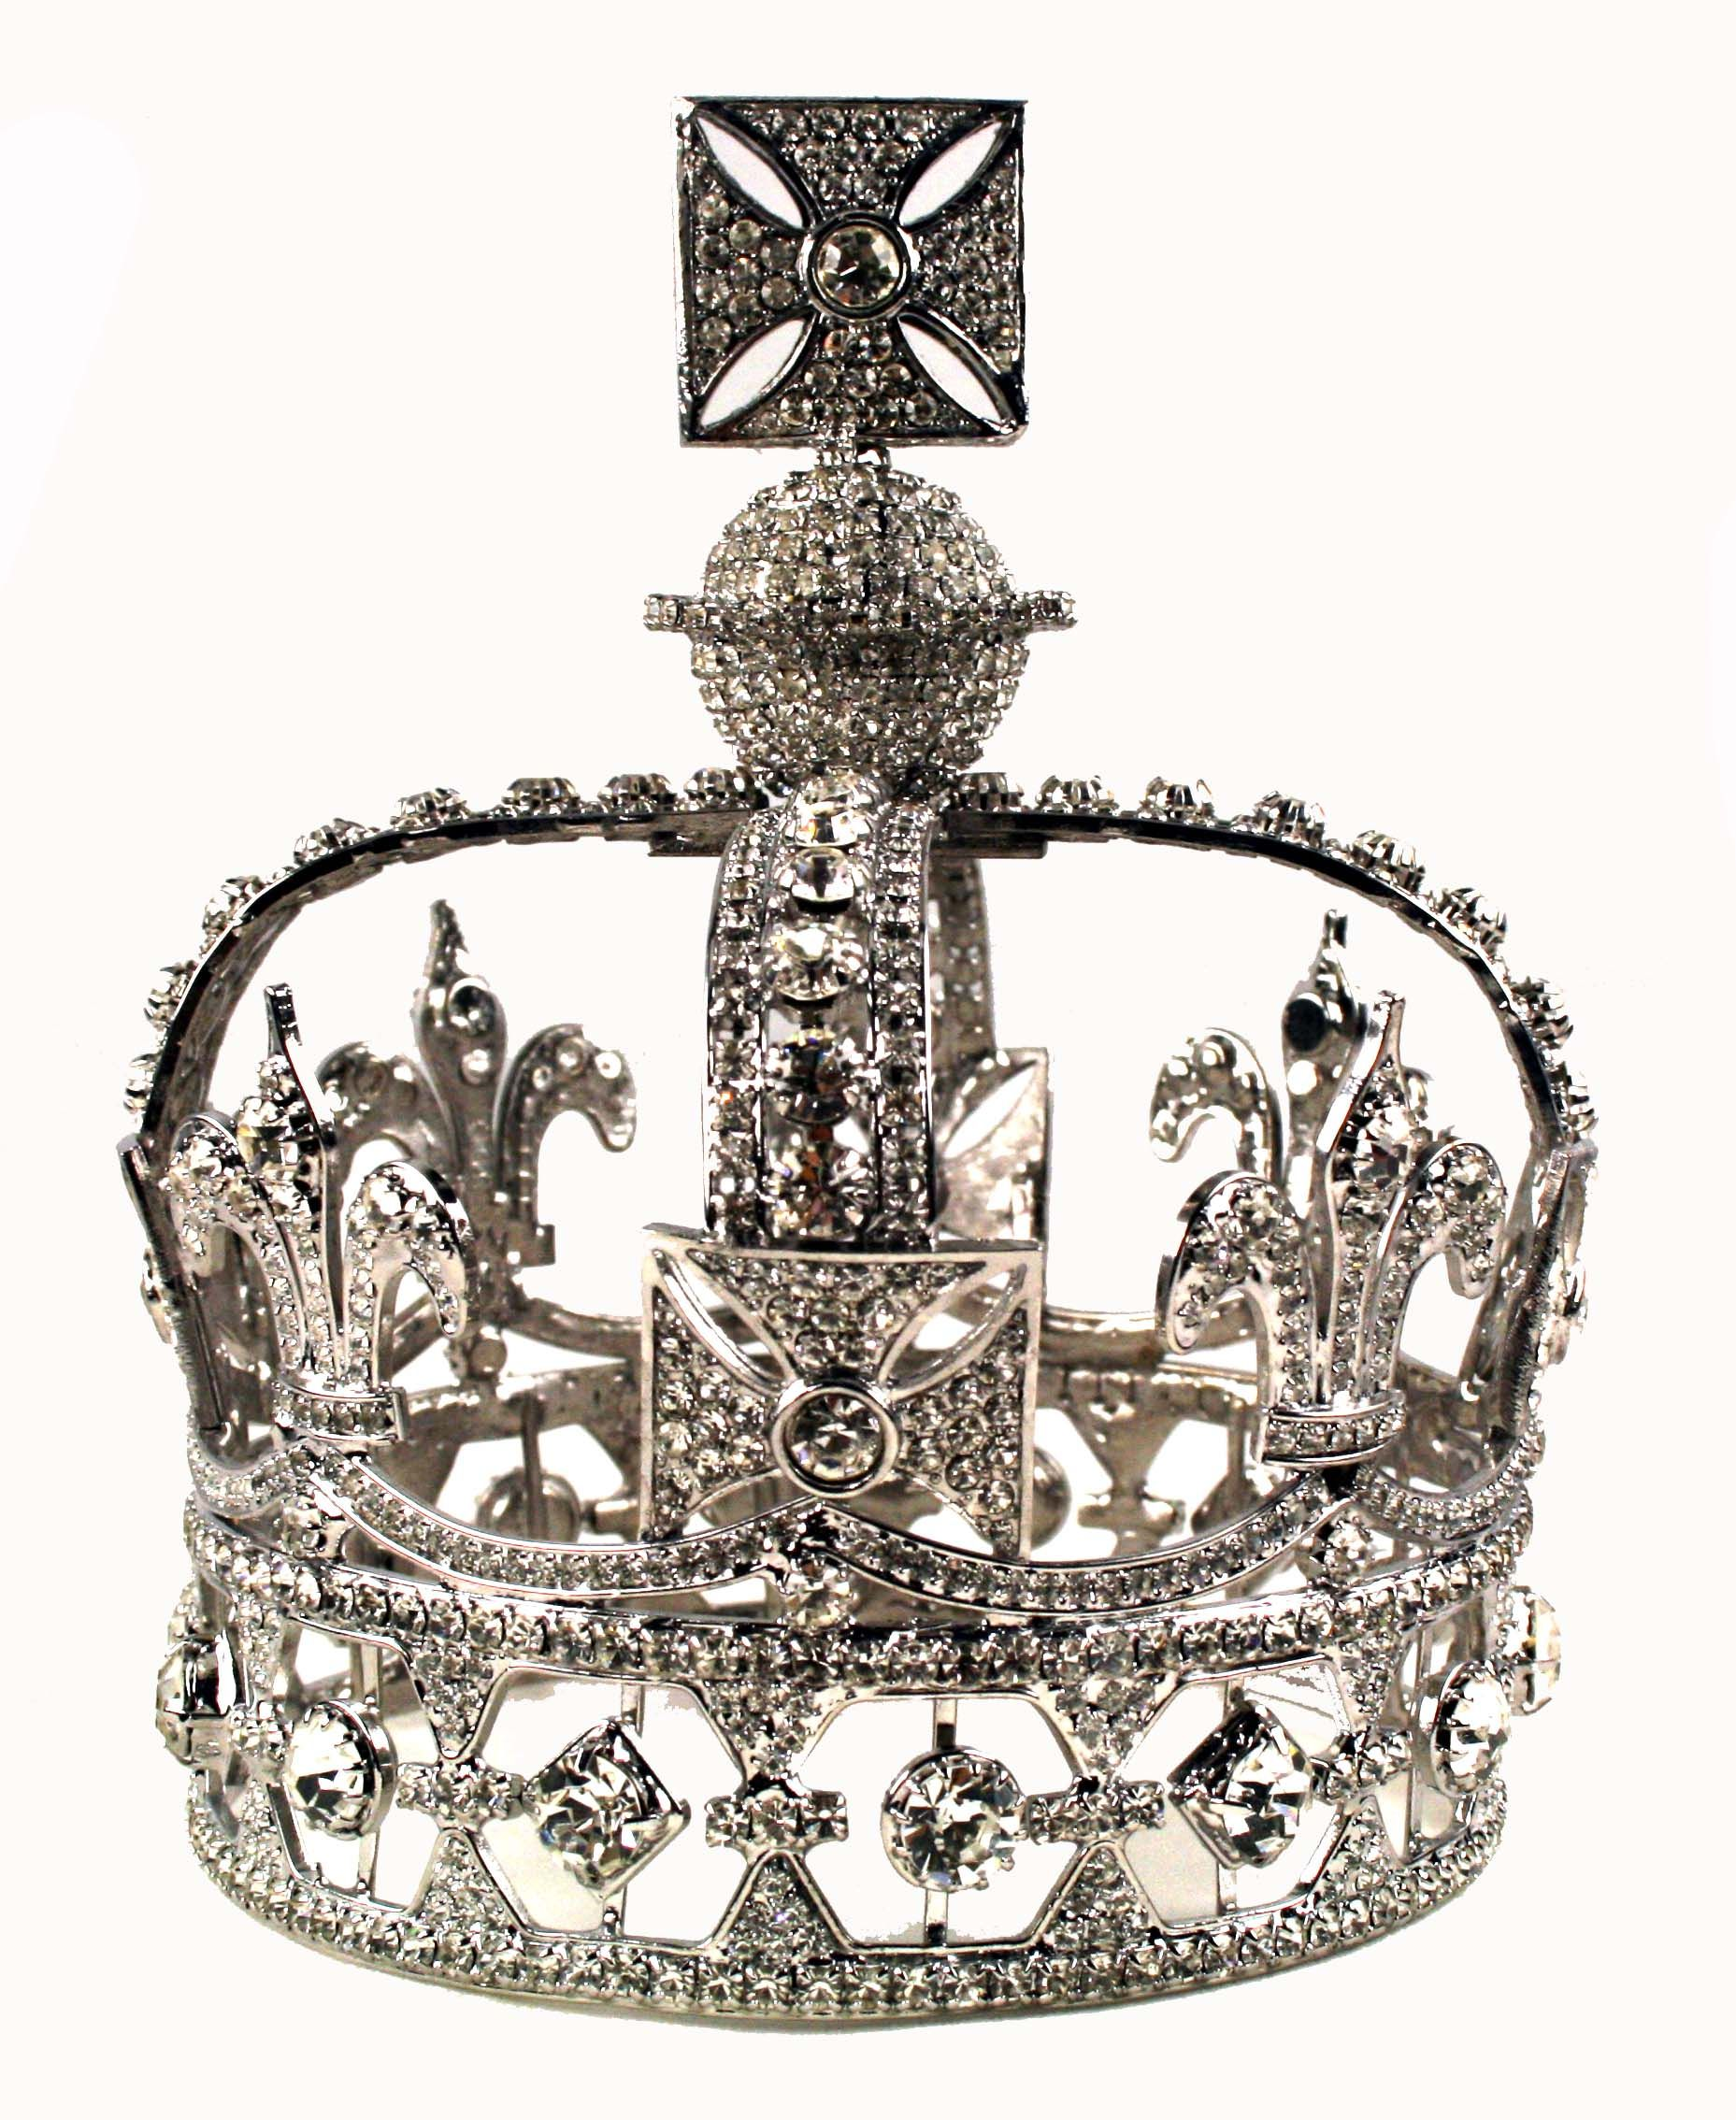 Queen Victoria's Diamond Crown. 1187 diamonds all came from a necklace she owned. She found the Imperial State Crown too heavy & could not be used with her mourning veil, and very much resented the complicated procedures involved when removing the crown from the Tower of London.